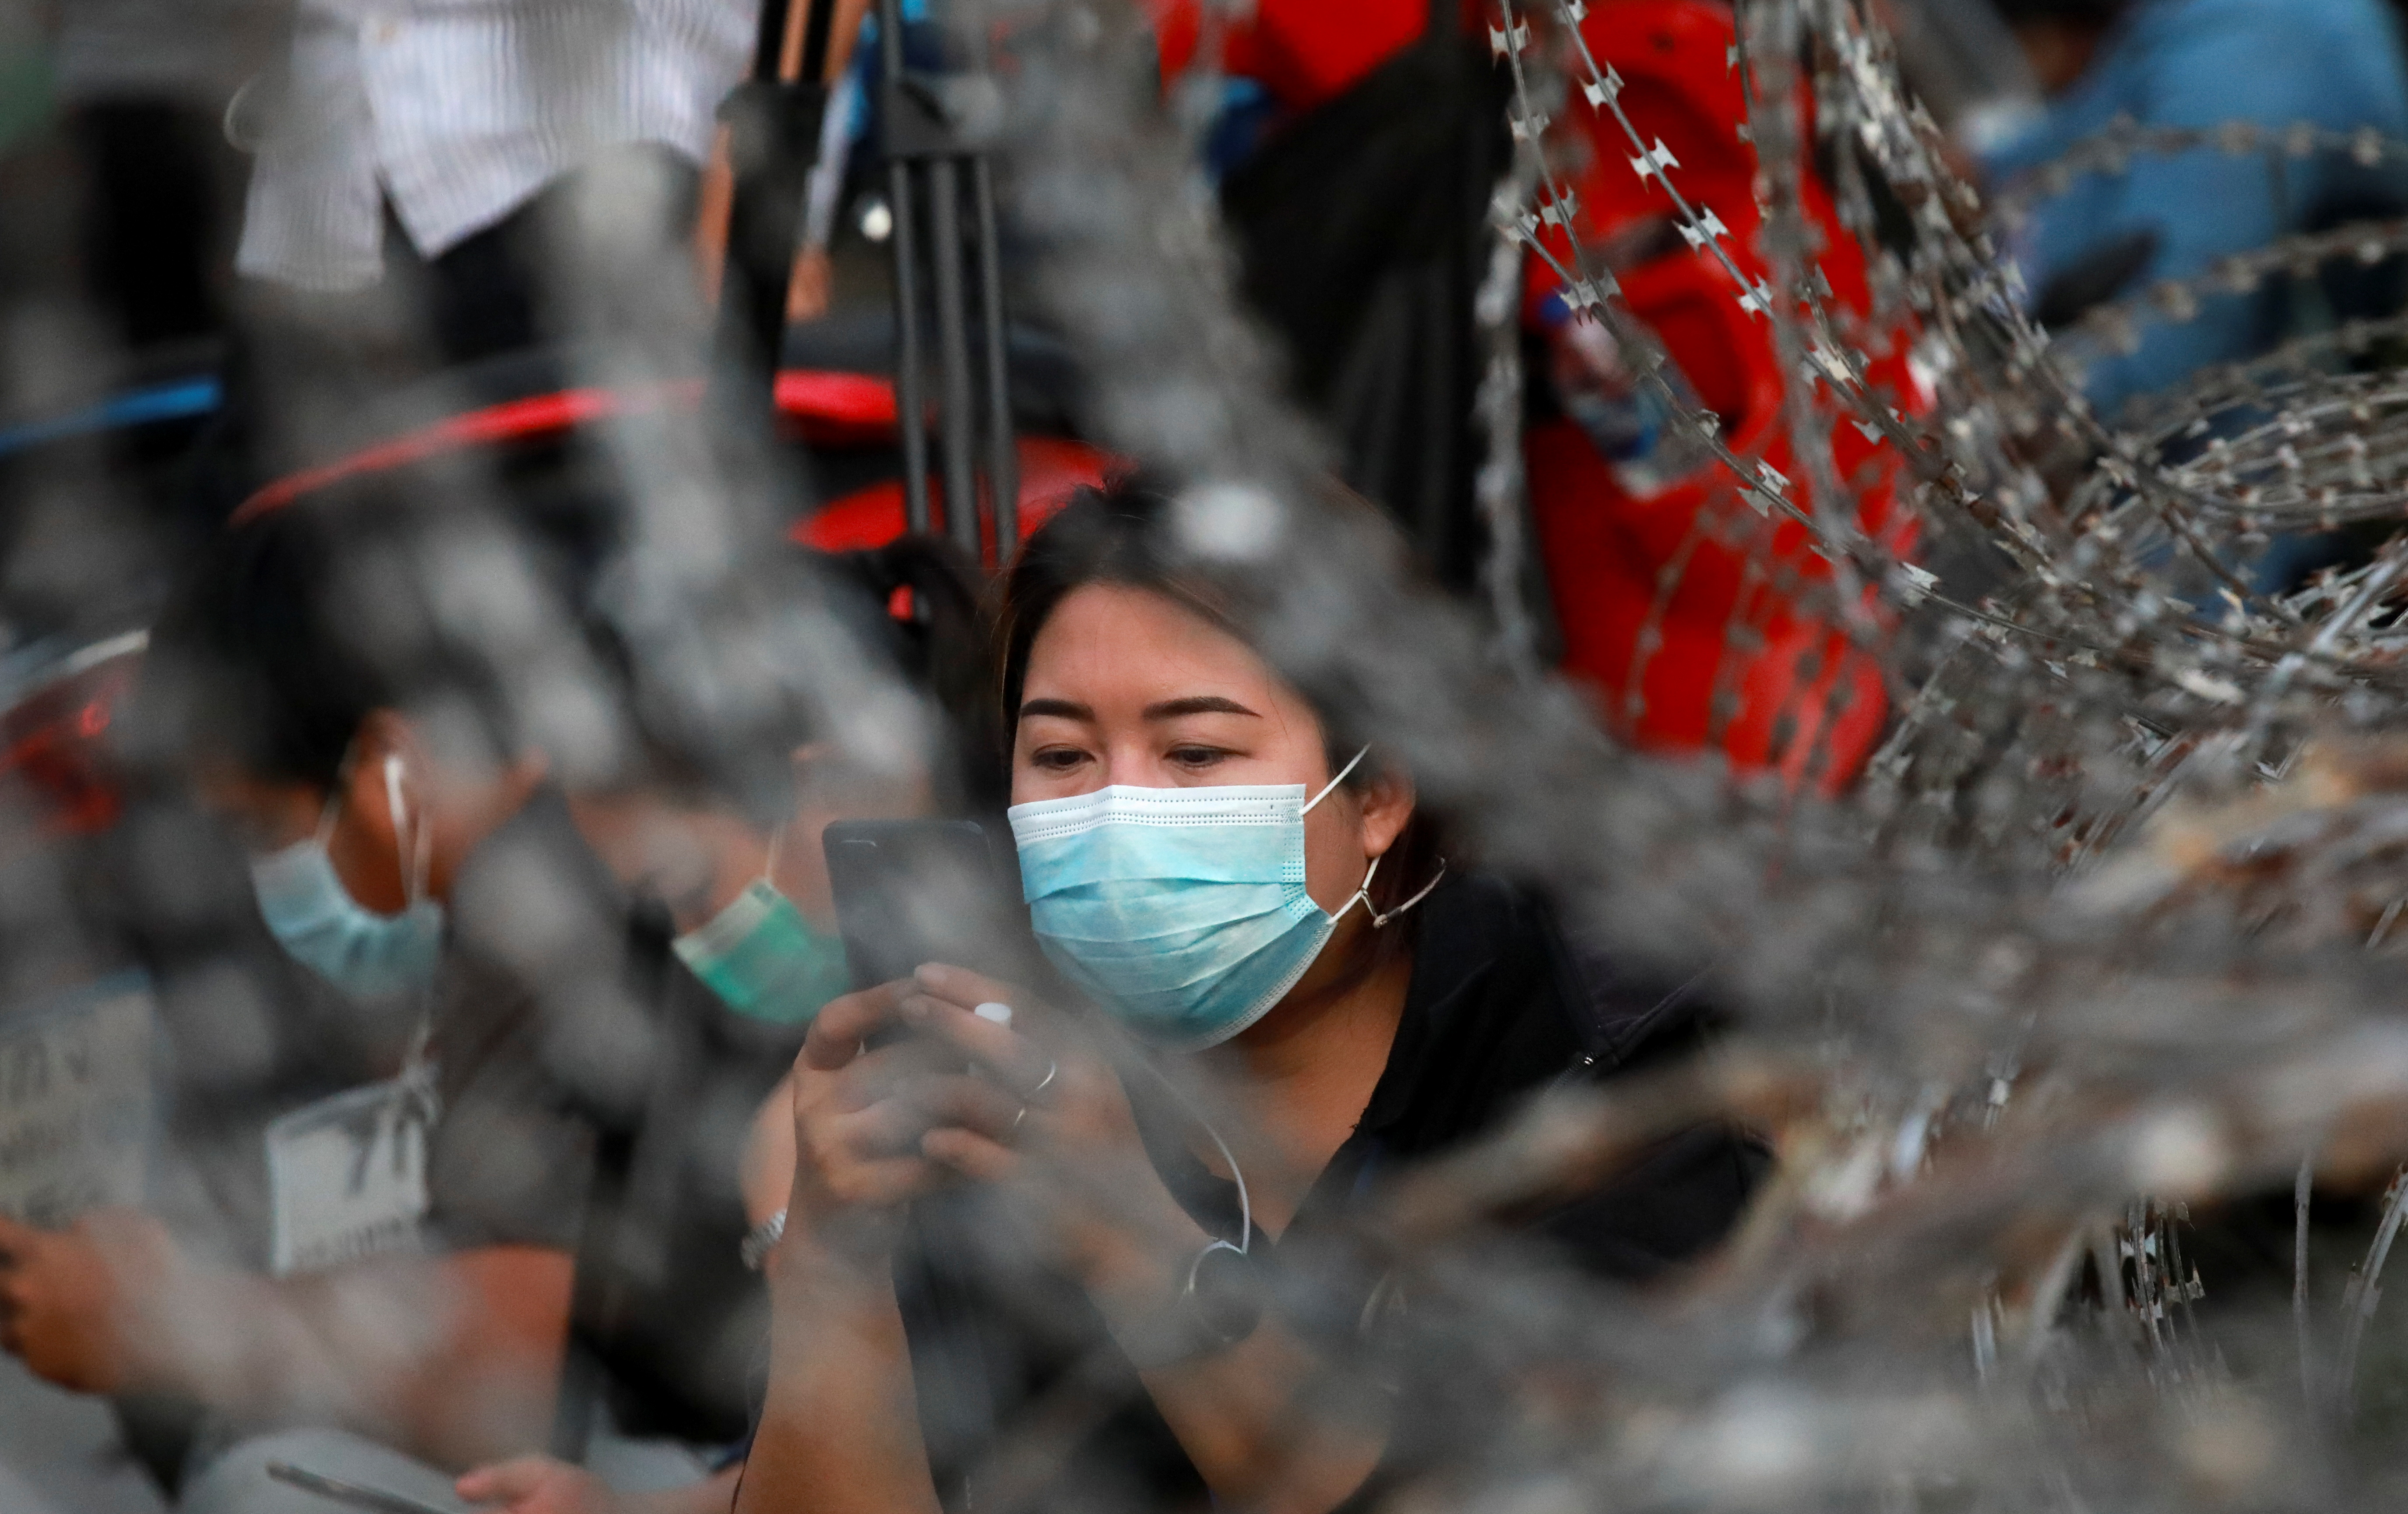 A supporter of anti-government protest leaders arrested and charged with lese majeste looks at her phone while waiting for their release on bail outside Klongprem Central Prisonin Bangkok, Thailand May 11, 2021. REUTERS/Soe Zeya Tun